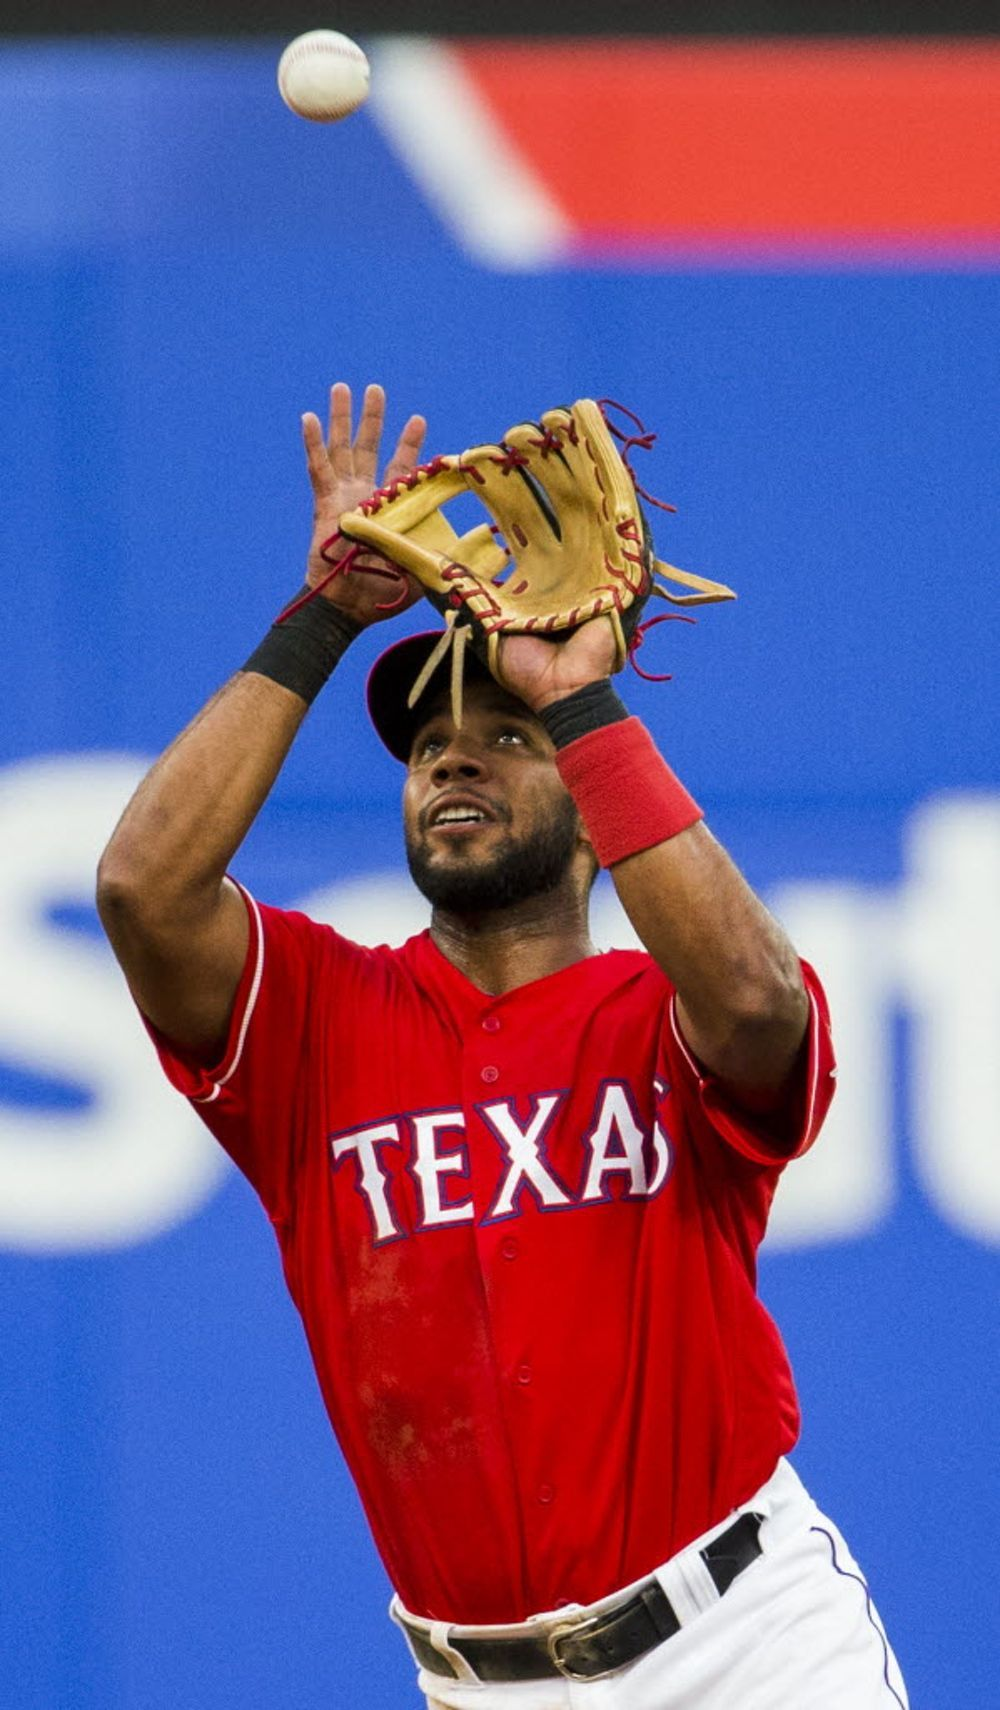 Texas Rangers Shortstop Elvis Andrus 1 Catches A Fly Ball During The Third Inning Of Their Game Against Texas Rangers Texas Rangers Baseball Rangers Baseball